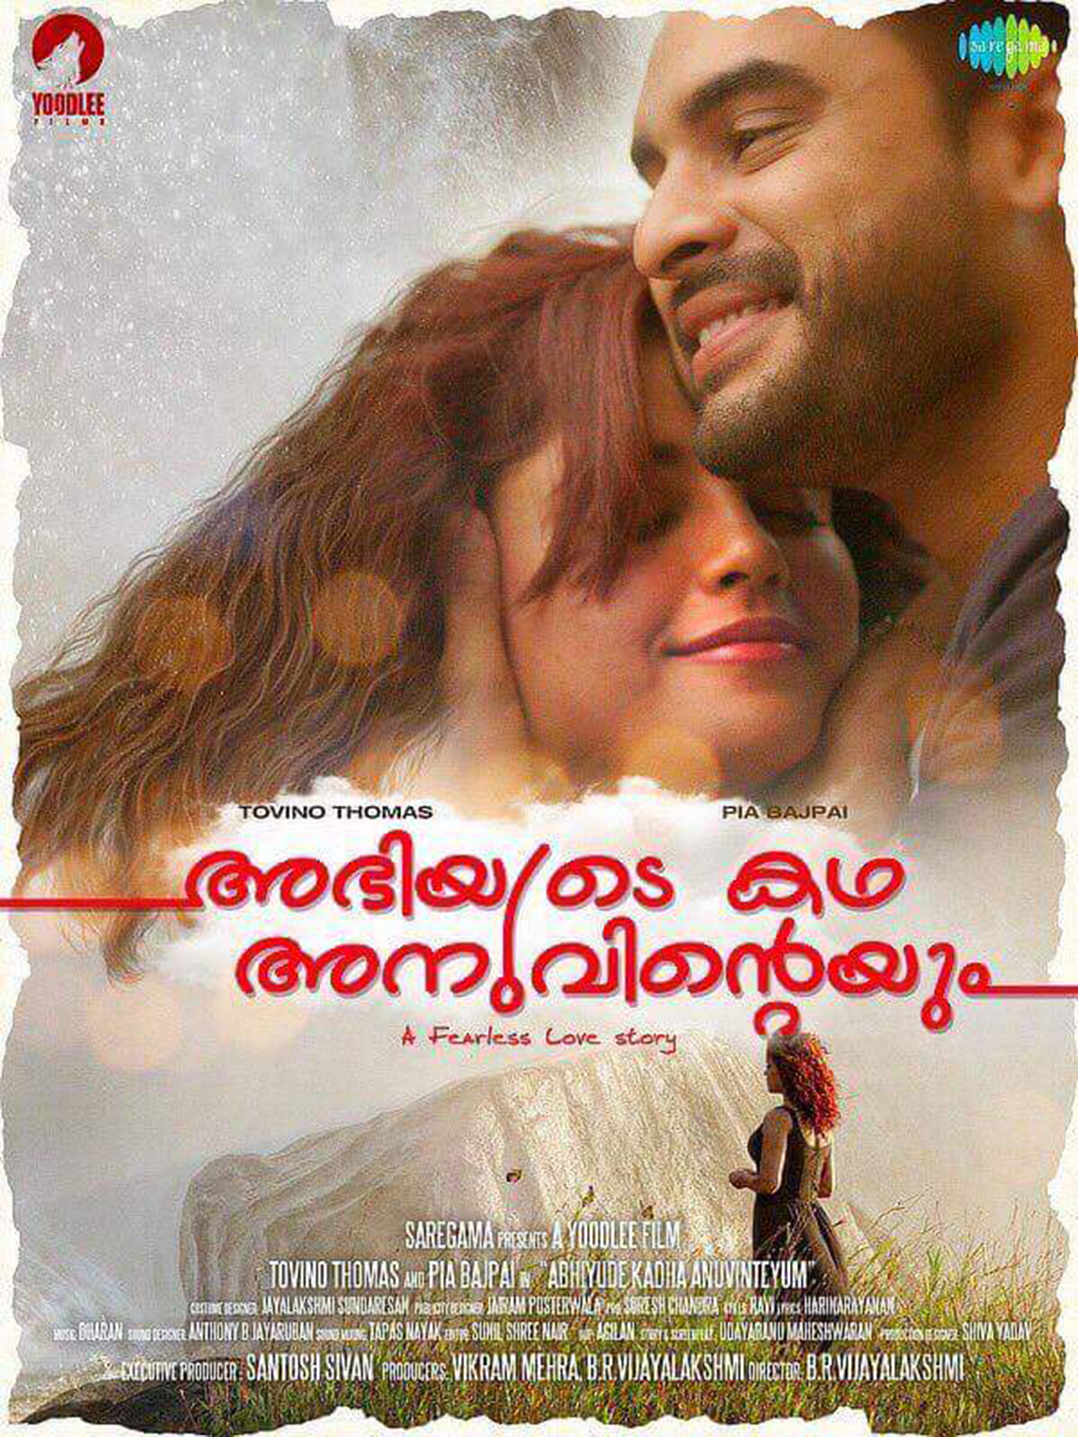 Abi & Anu,Abi & Anu movie stils, tovino thomas, tovino thomas tamil movie, tovino thomas new movie, br vijayalakshmi,Abhiyude Kadha Anuvinteyum,Abhiyude Kadha Anuvinteyum movie posters, abhiyum anuvum movie new poster, aravind swamy, aravind swamy new movie,